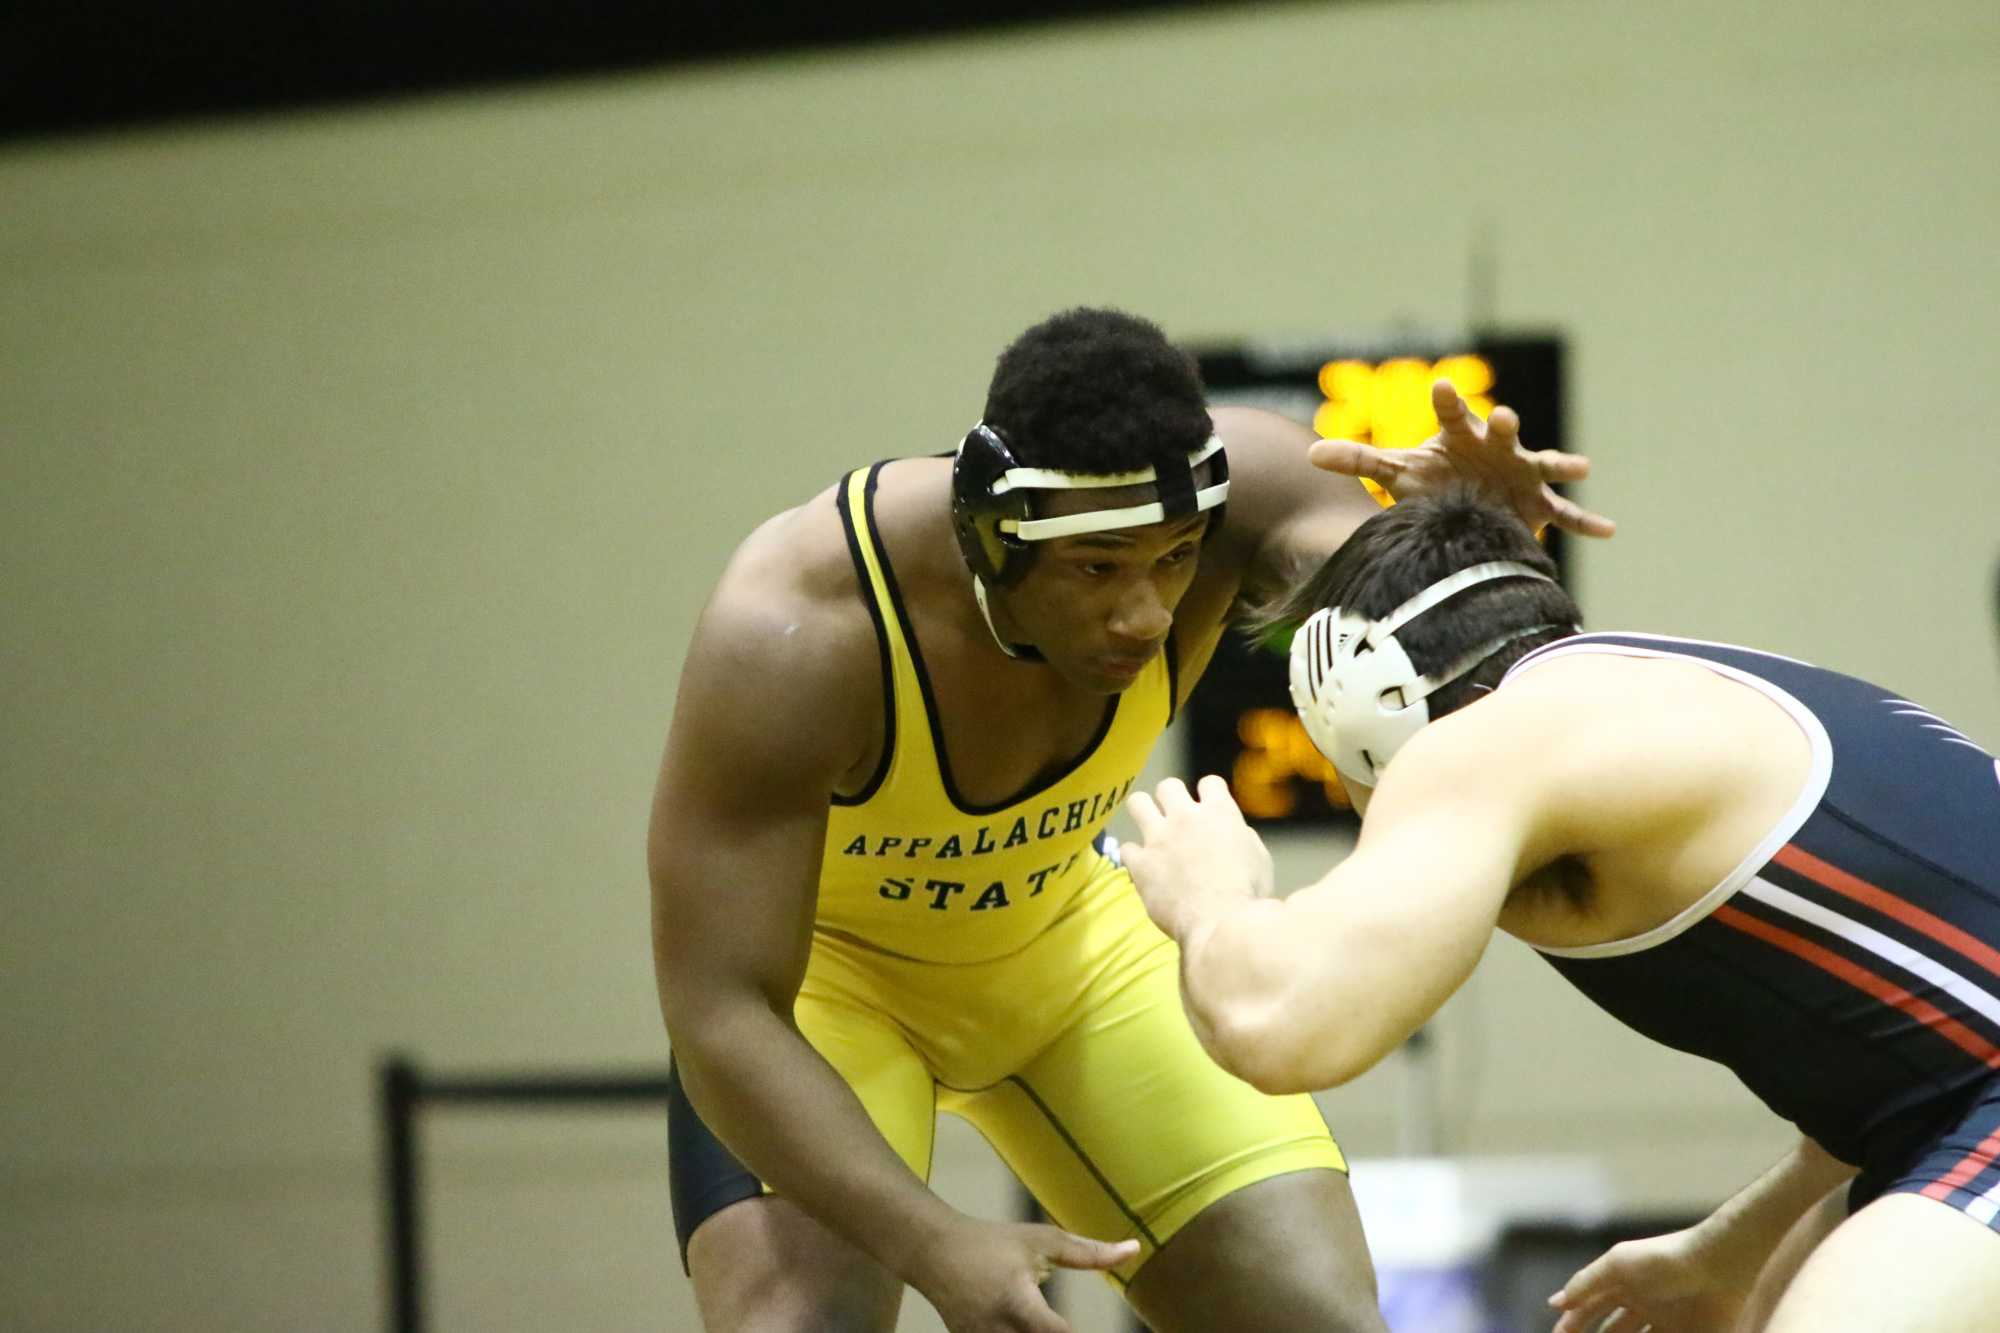 Denzel+Dejournette+prepares+to+take+down+his+opponent+during+a+match+against+SIUE.+Photo+courtesy+Appalachian+State+Athletics.